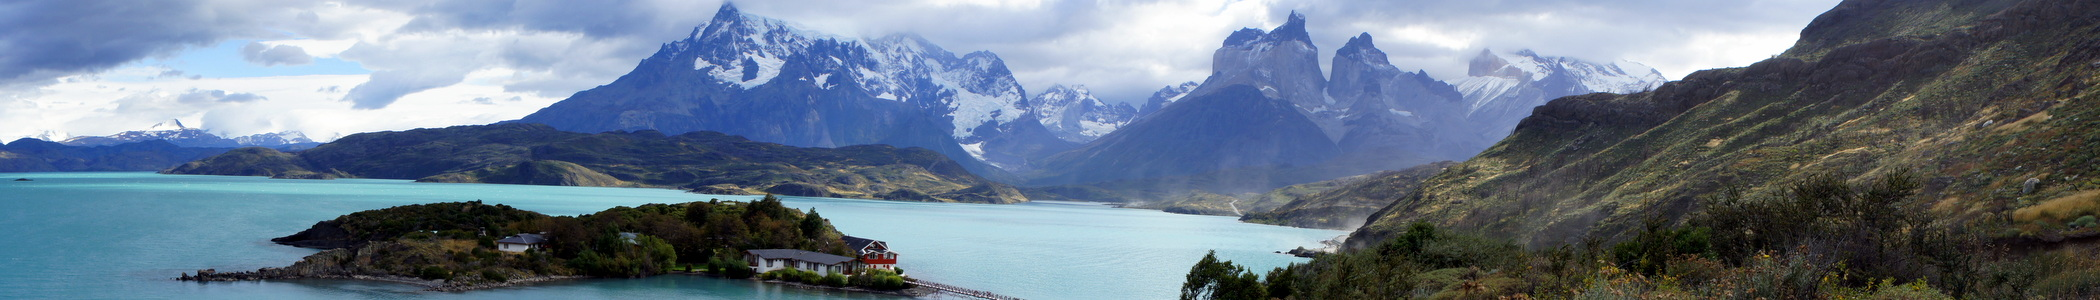 Patagonia Chile Travel Guide At Wikivoyage